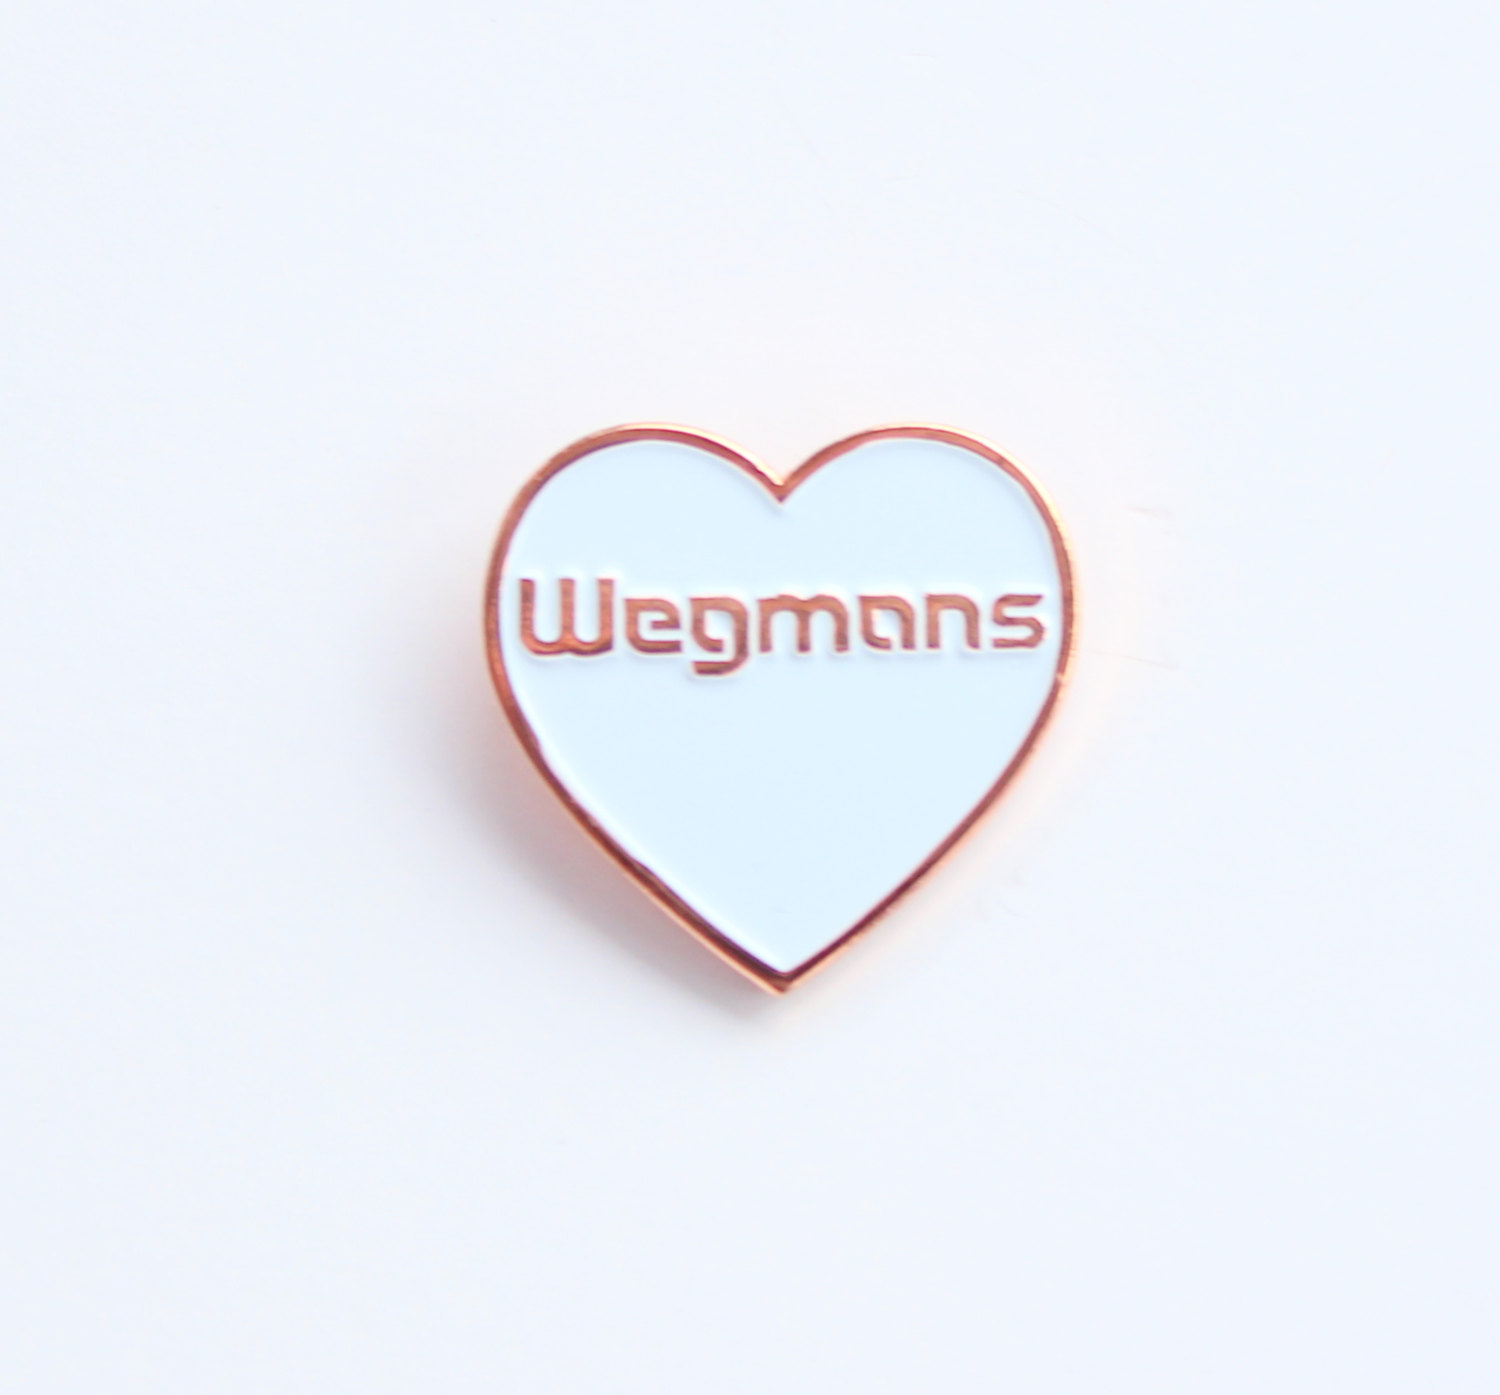 Wegmans is my True Love Lapel Pin - 1 inch soft enamel, funny, Western NY,  white rose gold from The Silver Spider Print Shop